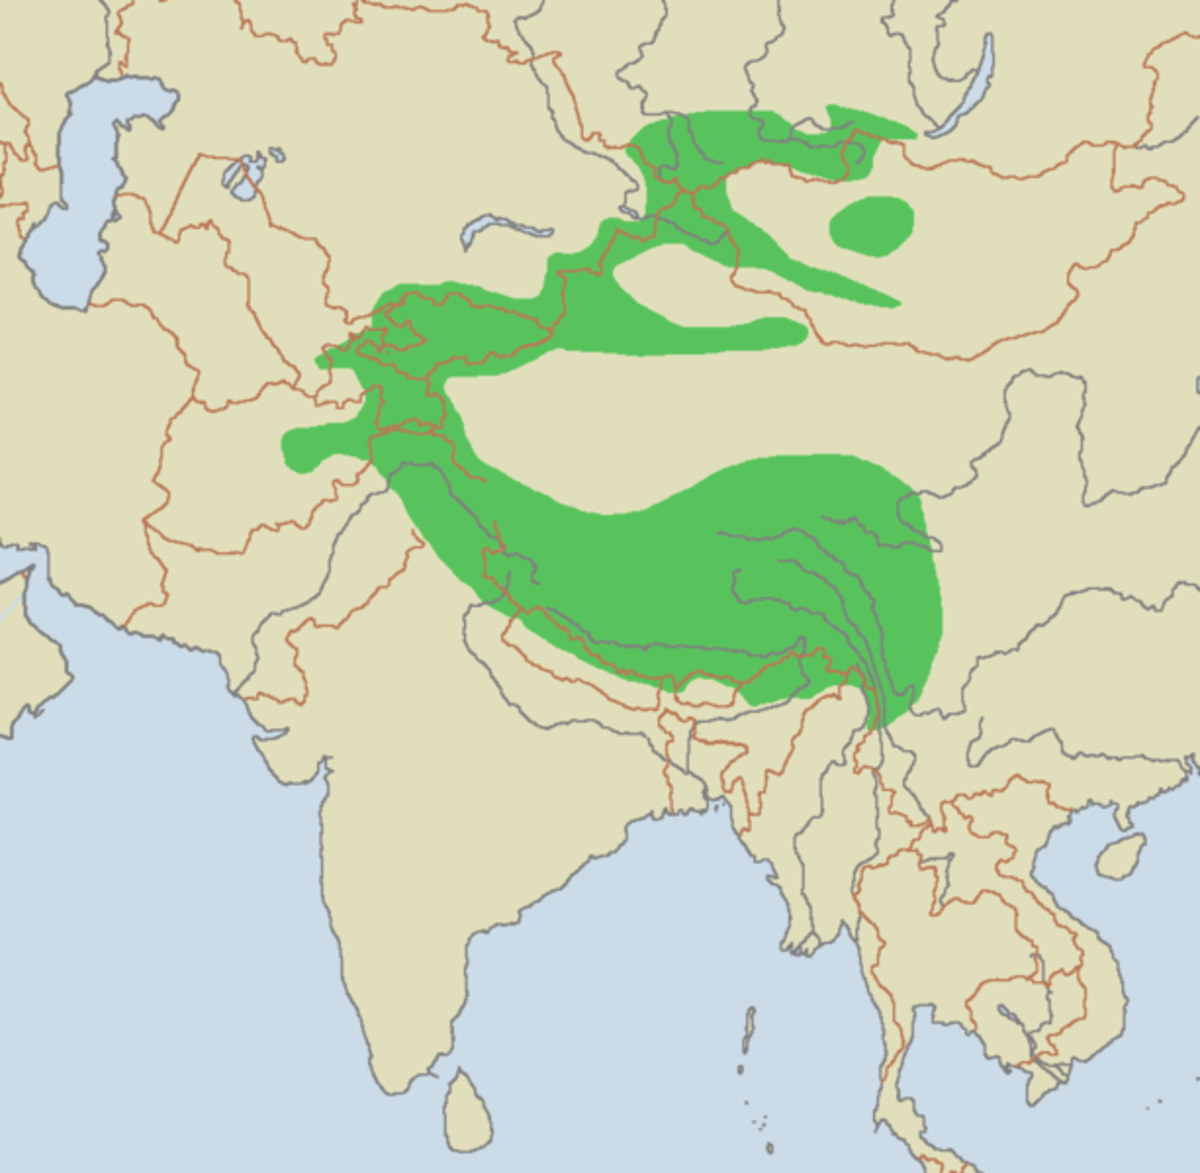 Map showing regions inhabited by the endangered snow leopard.